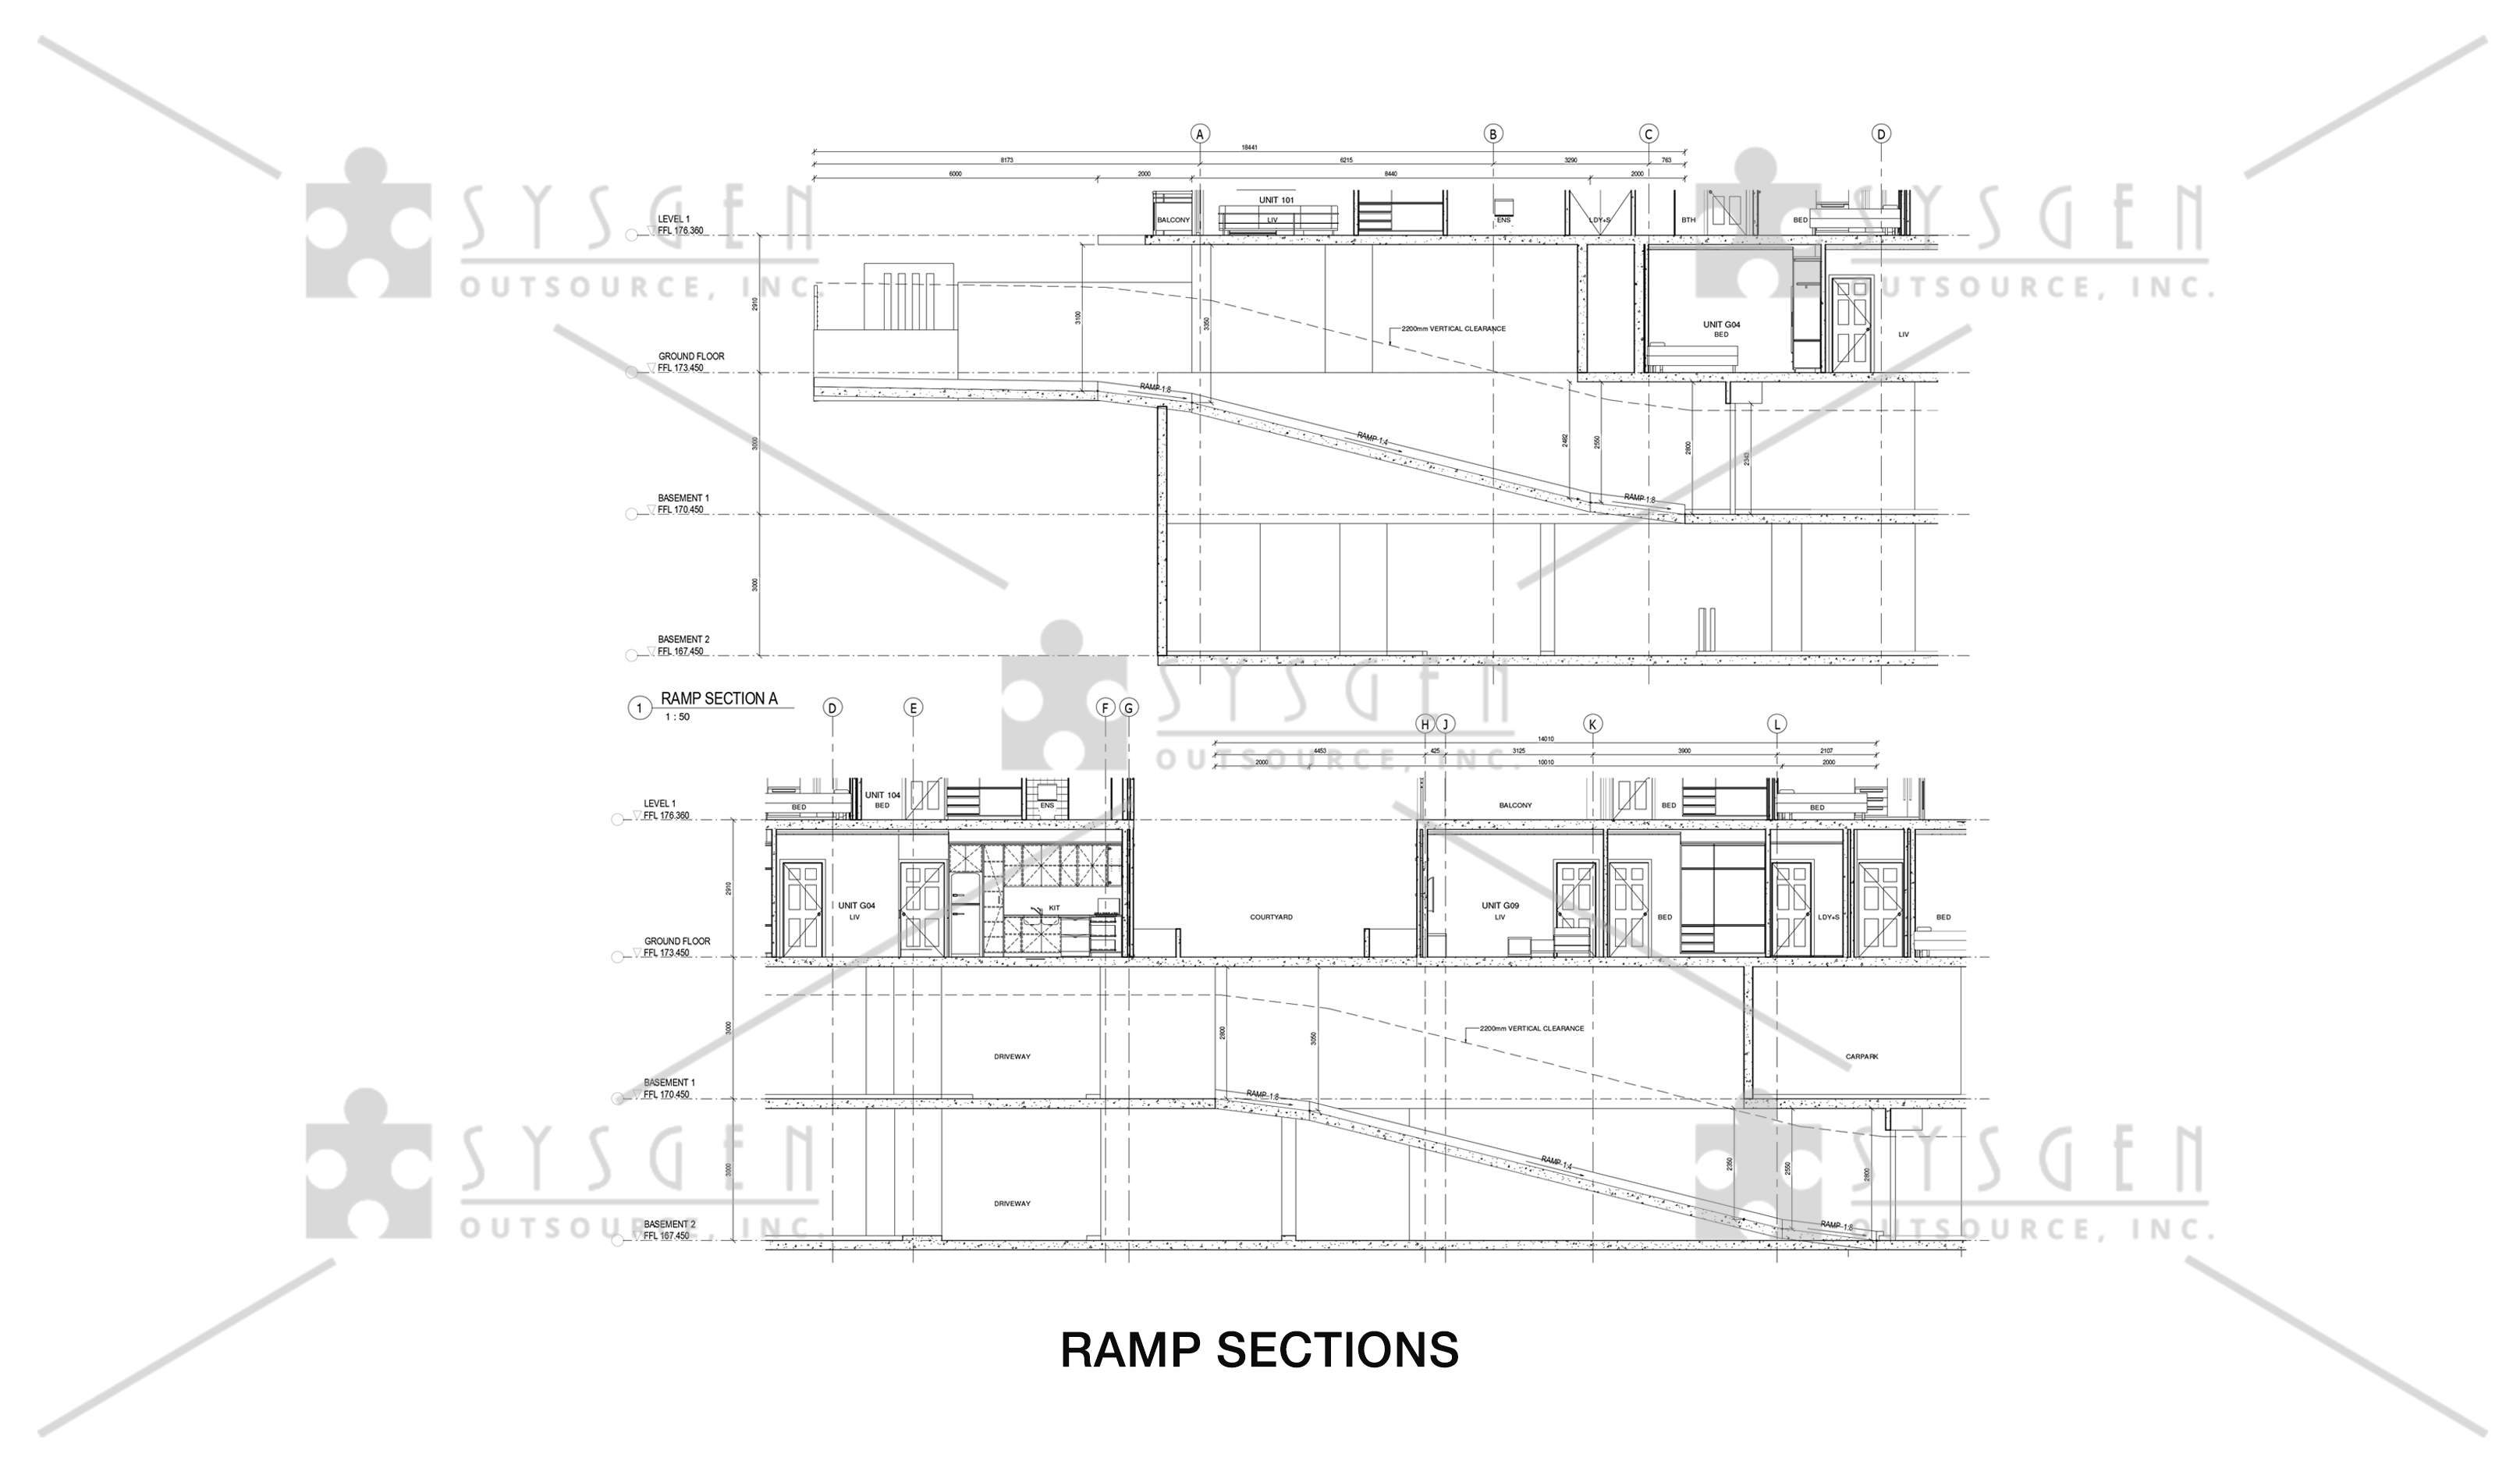 sysgen-outsource-cad-outsourcing-services-cad-conversion-revit-4-storey-residential15